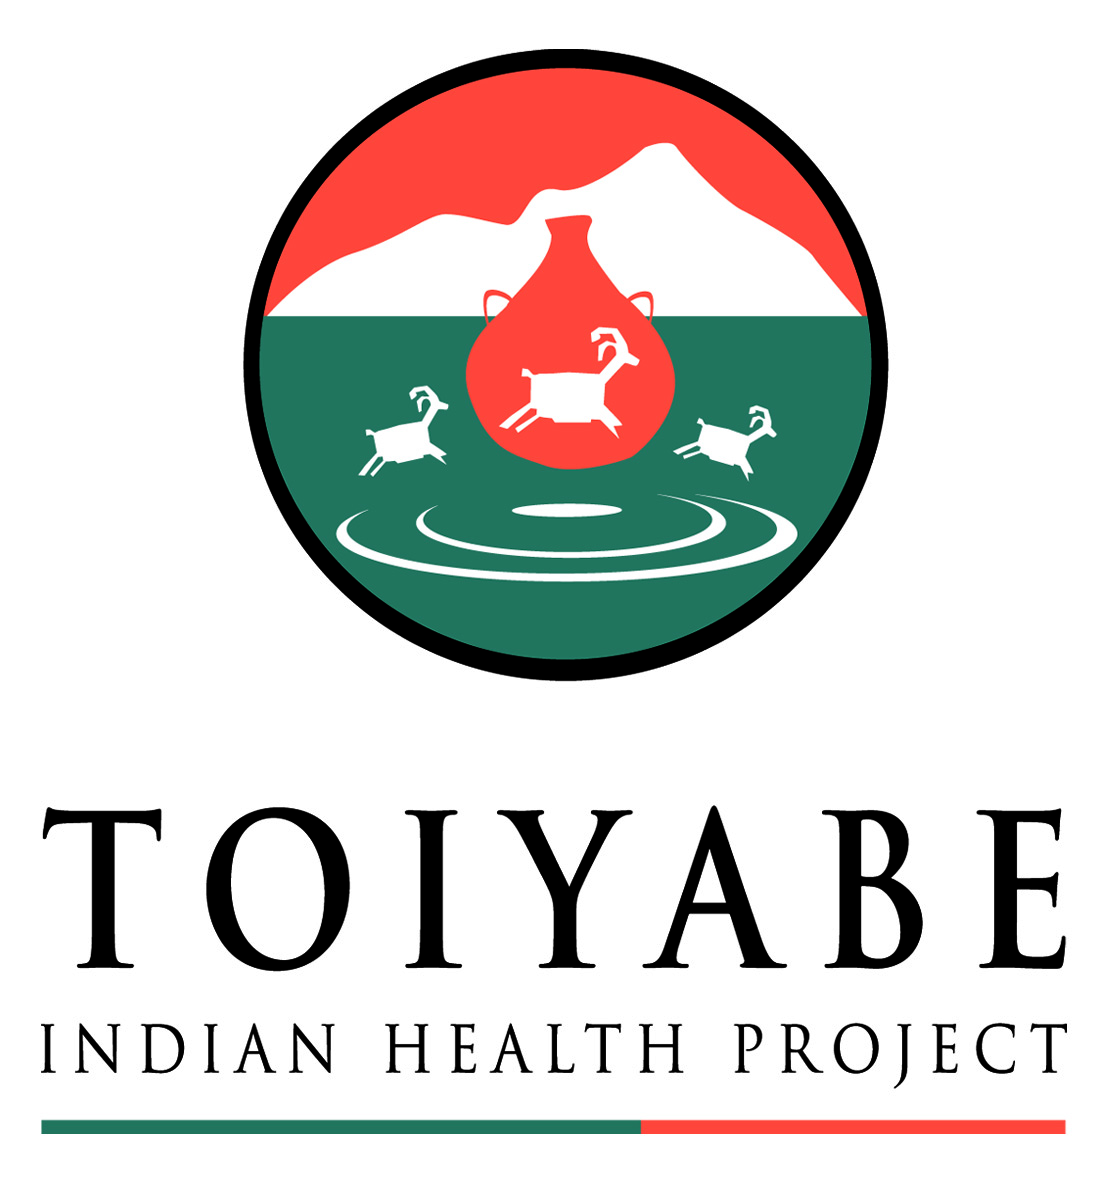 Toiyabe Indian Health Project